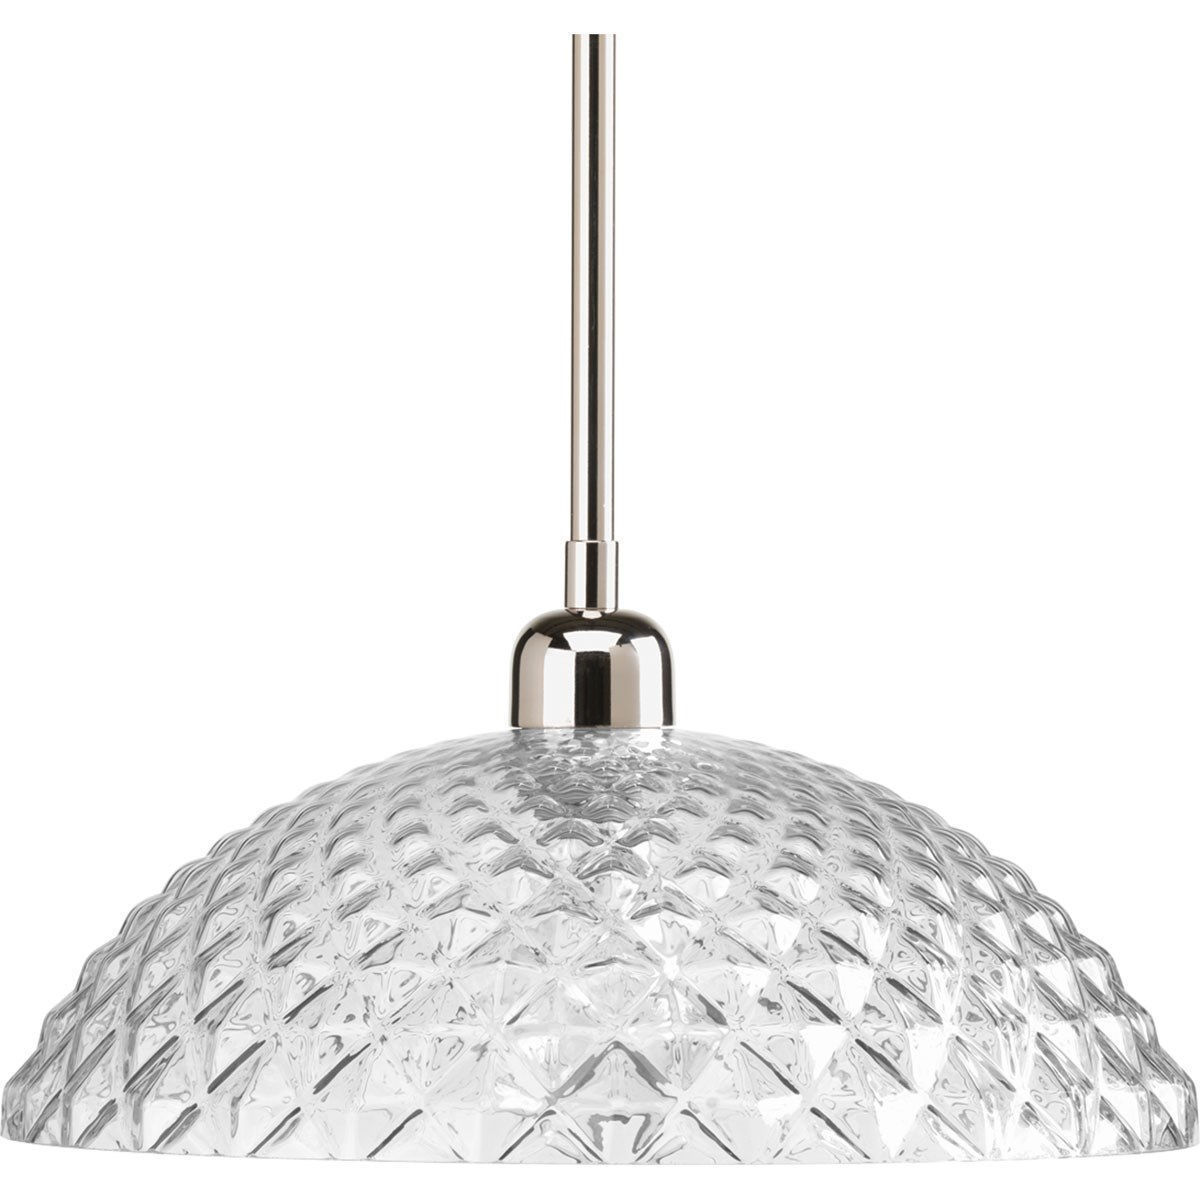 Polished Nickel Finish Ceiling Pendant Fixture Light Progress Lighting P5115-104